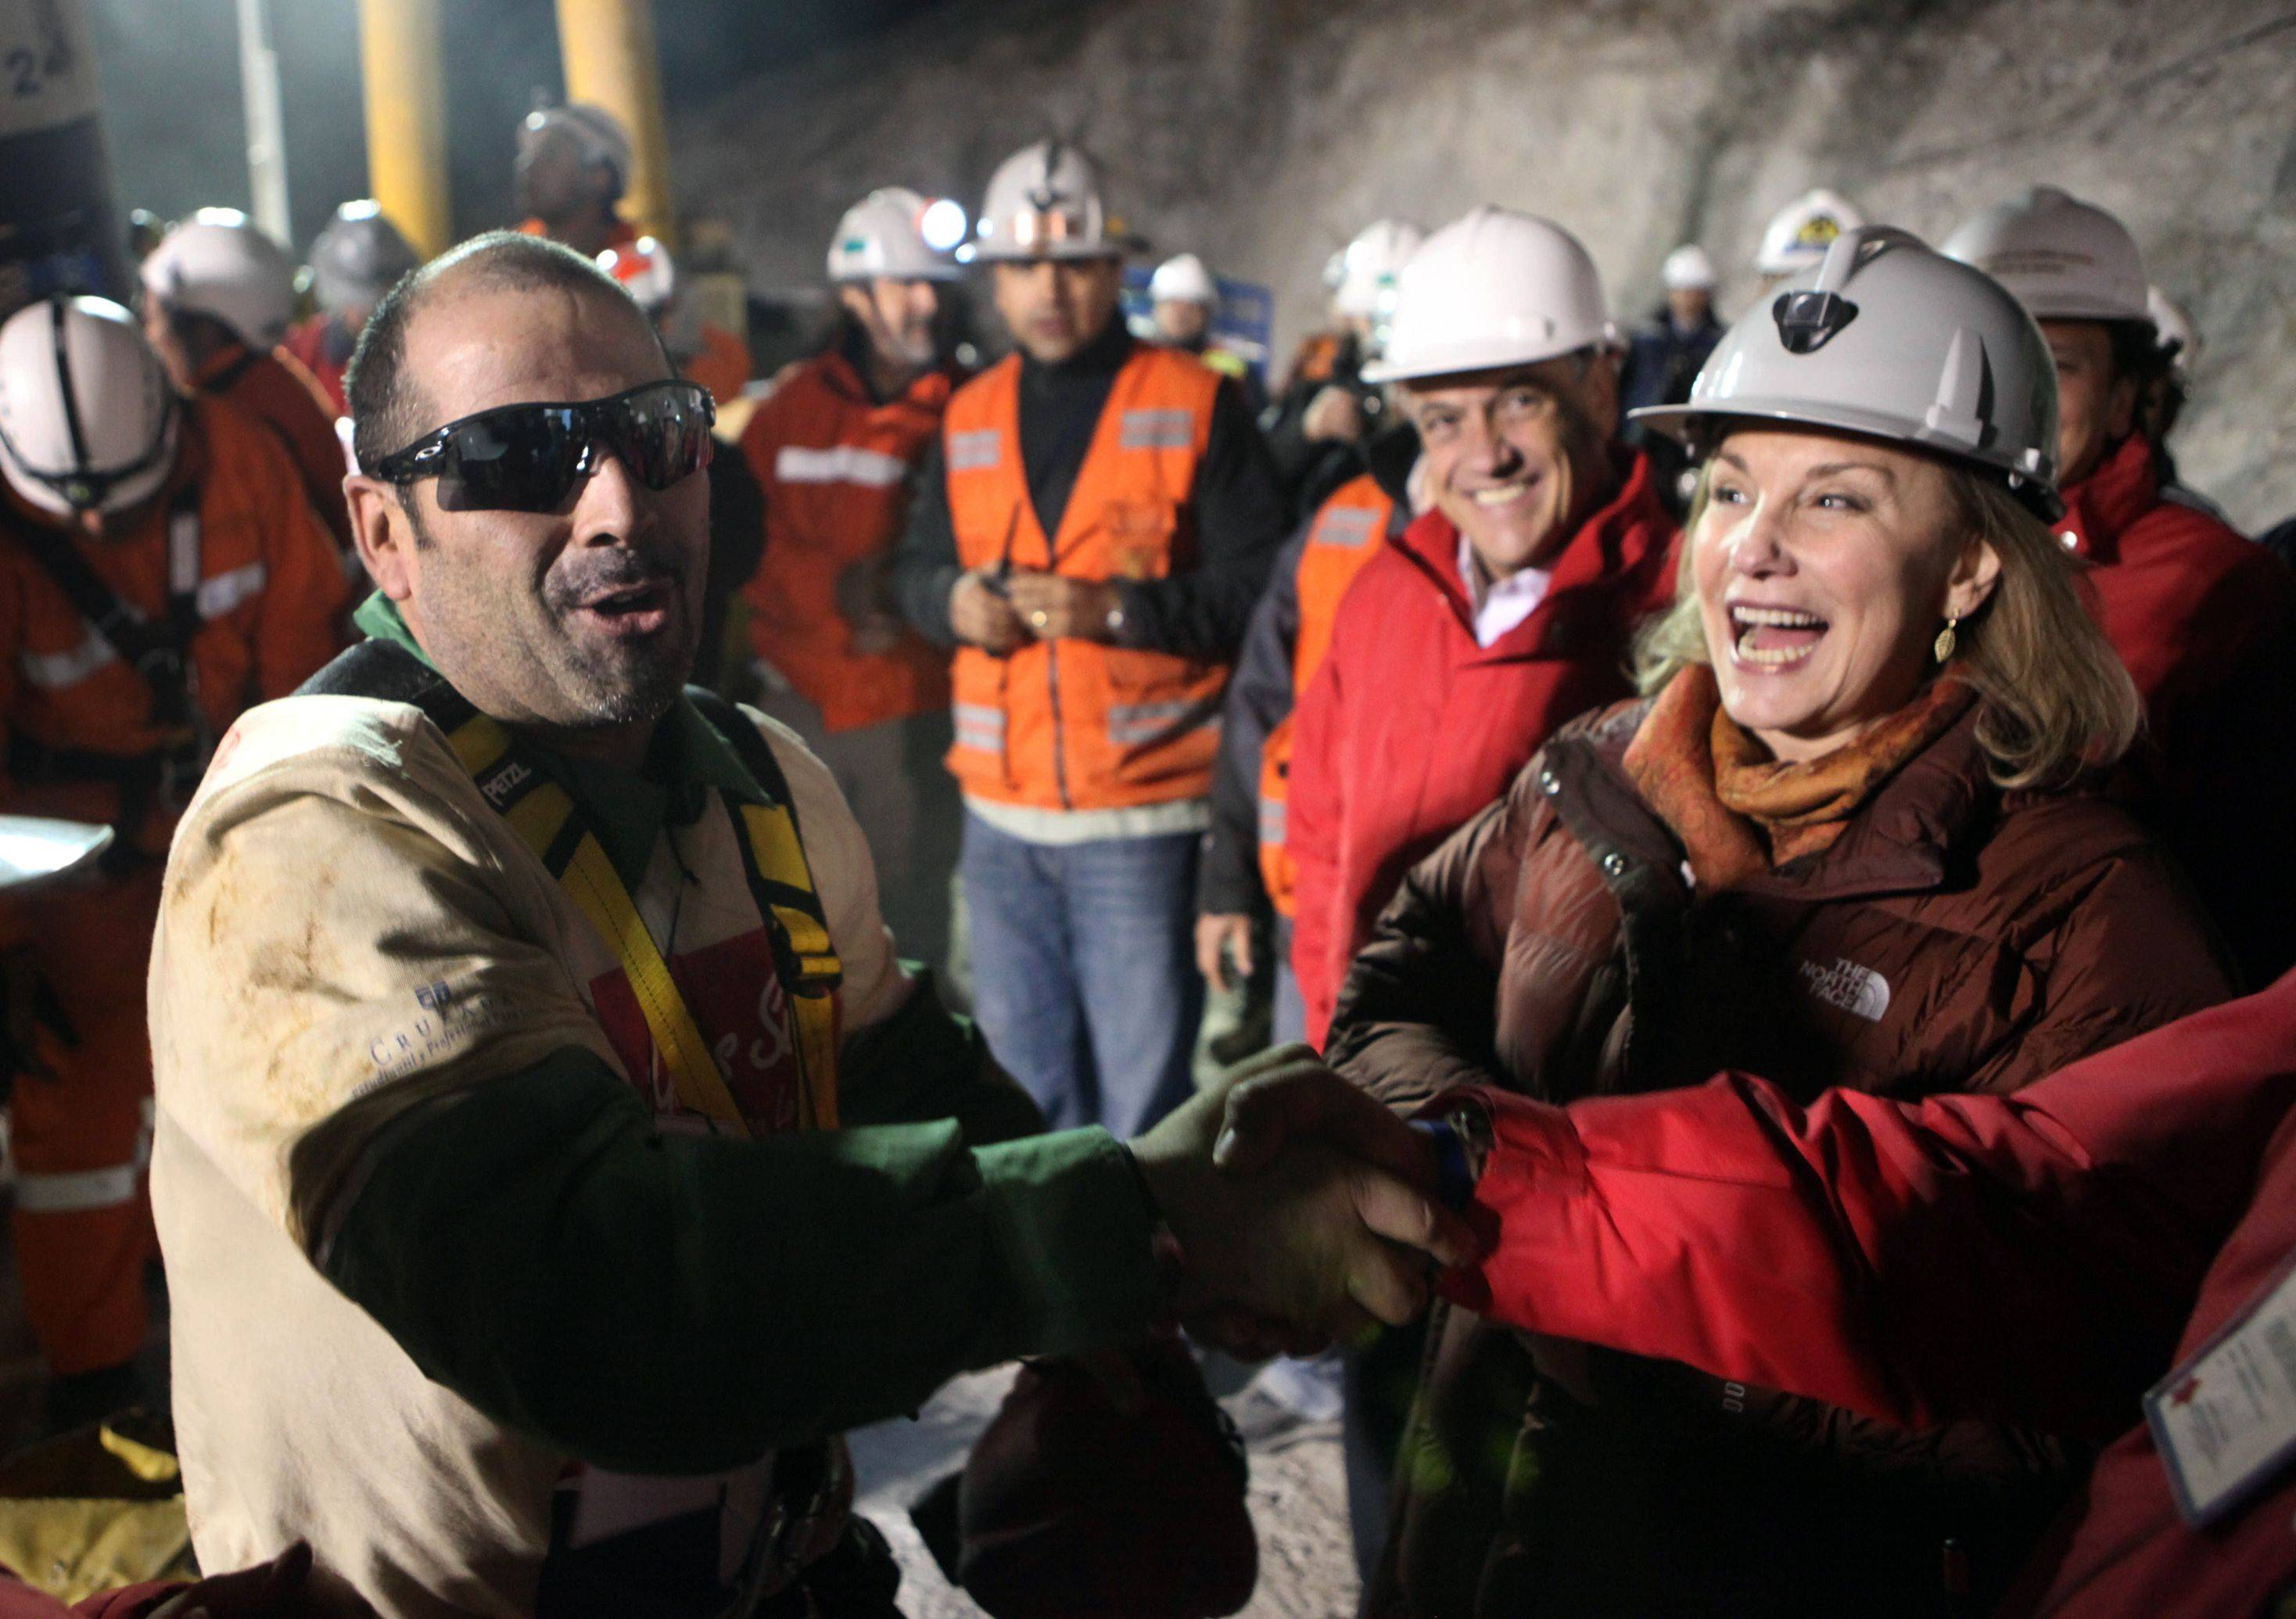 In this photo released by the Chilean government, miner Mario Sepulveda, left, shakes hands with an official as Chilean first lady Cecilia Morel and President Sebastian Pinera, second right, look on, after being rescued from the collapsed San Jose gold and copper mine where he was trapped with 32 other miners for over two months near Copiapo, Chile, early Wednesday, Oct. 13, 2010.